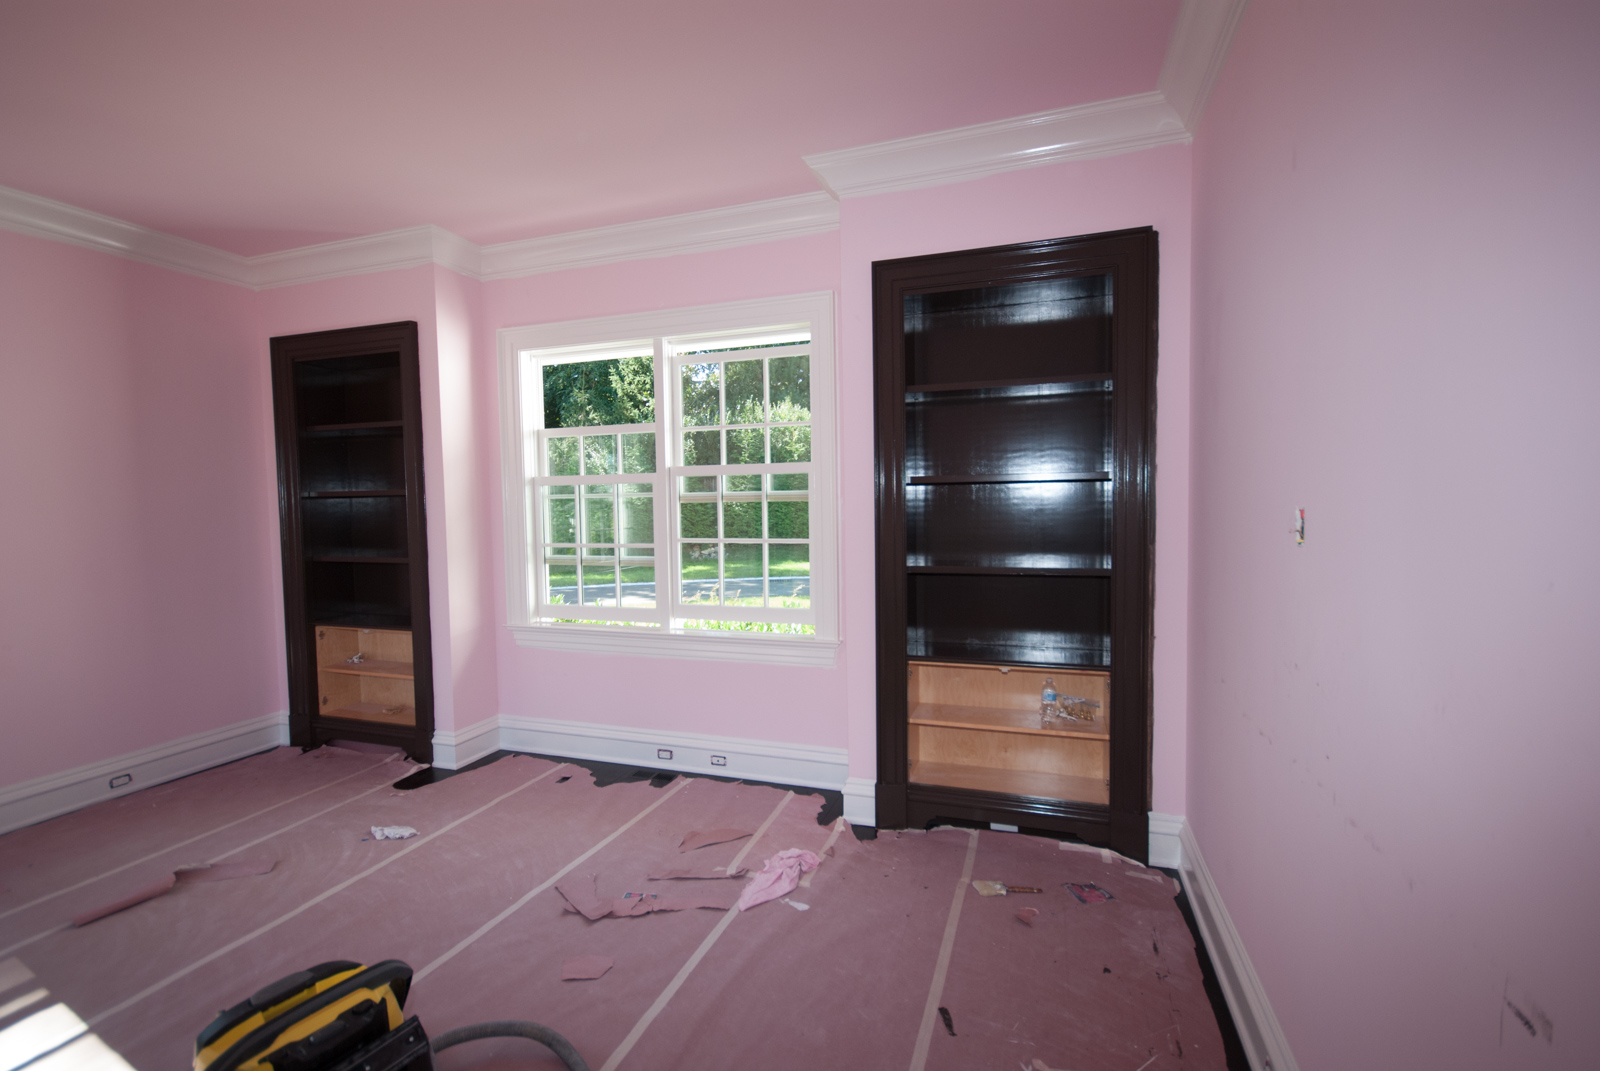 DSC_2546.jpg - The bookshelves are painted, as are the baseboards and crowns in my study.